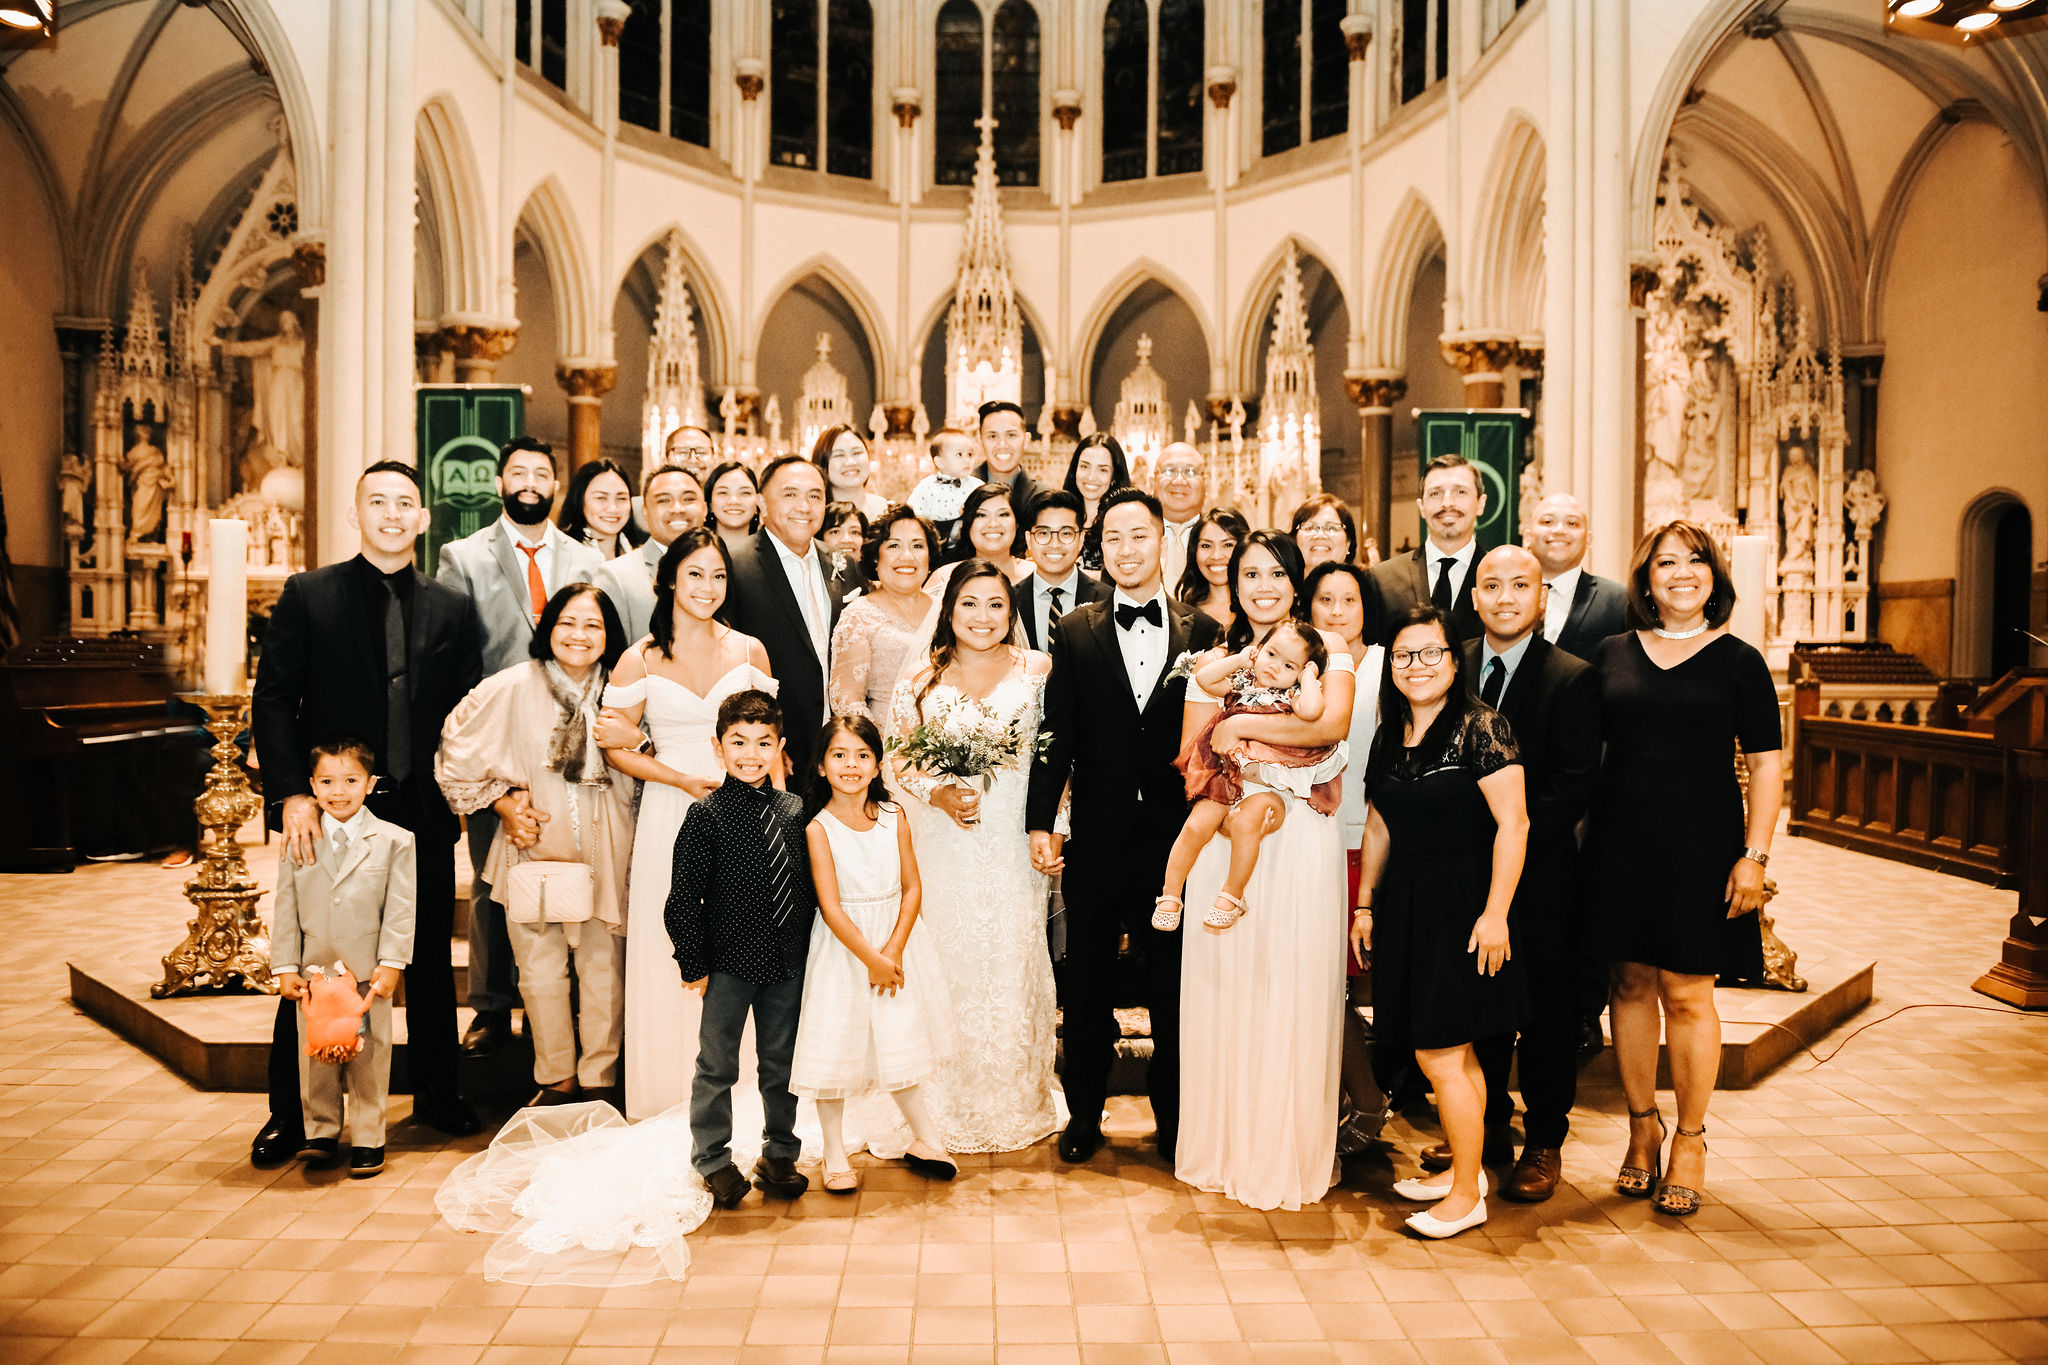 A family affair - Karen and Calvin's families traveled from all over the country to celebrate with the happy couple.